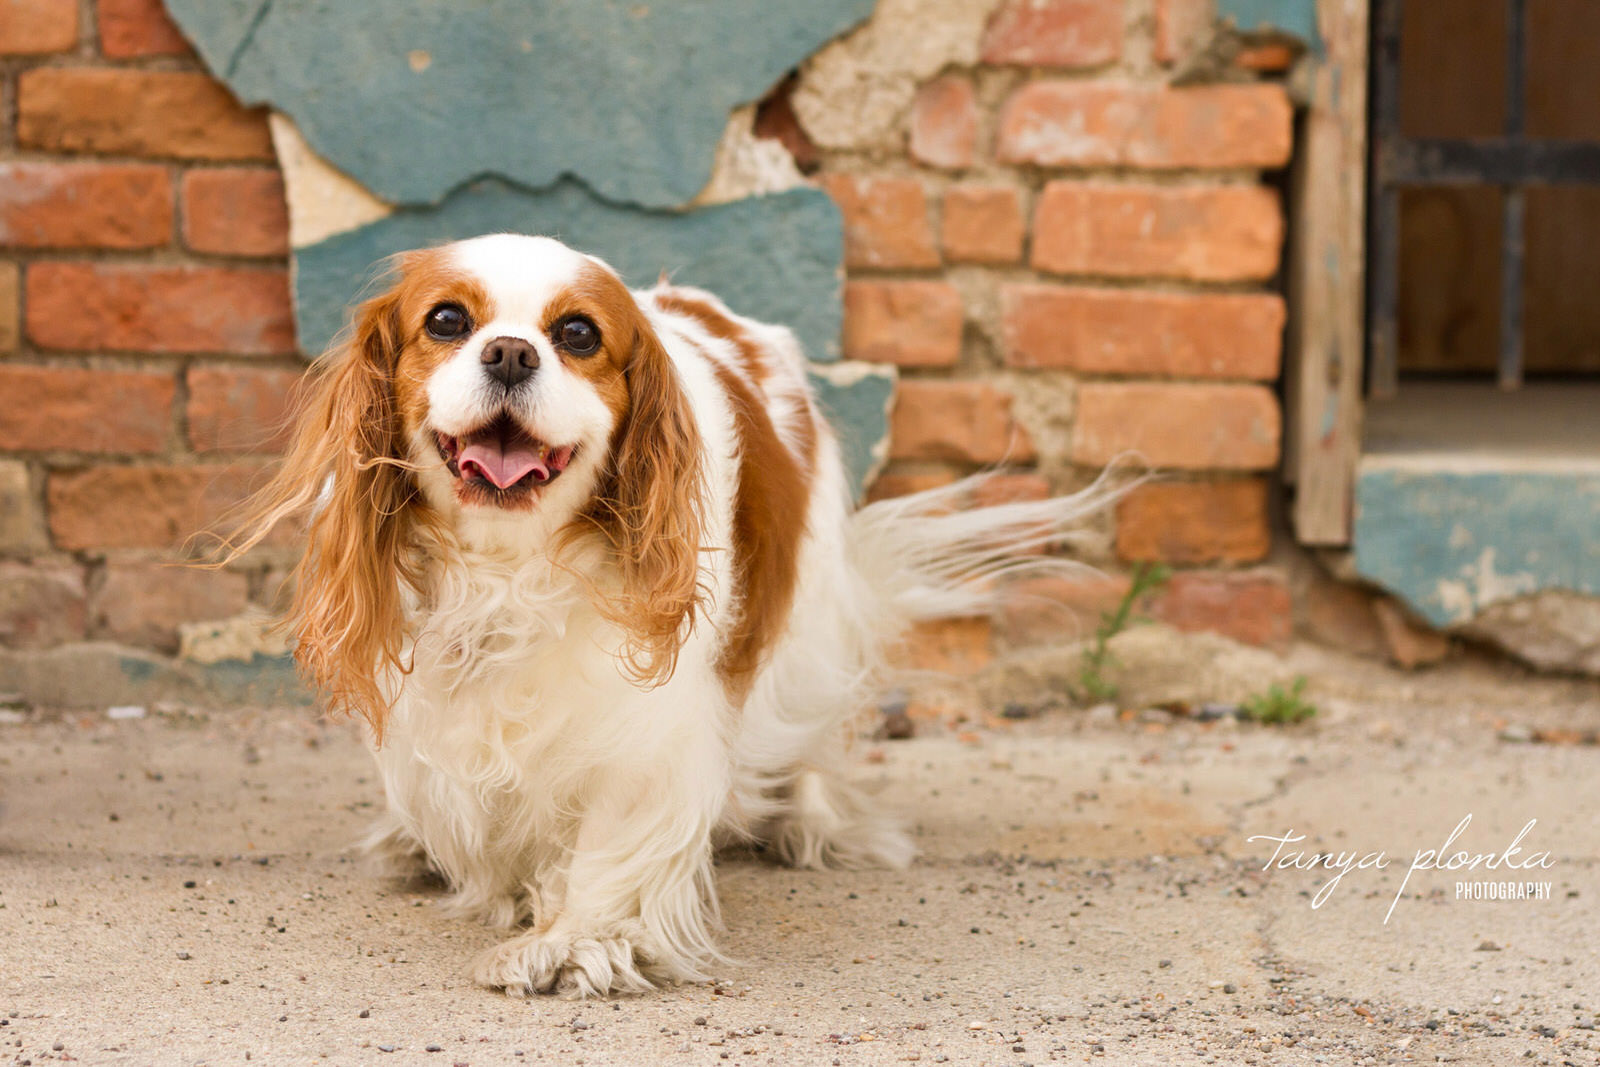 smiling Cavalier King Charles Spaniel stands in front of brick wall in downtown Lethbridge